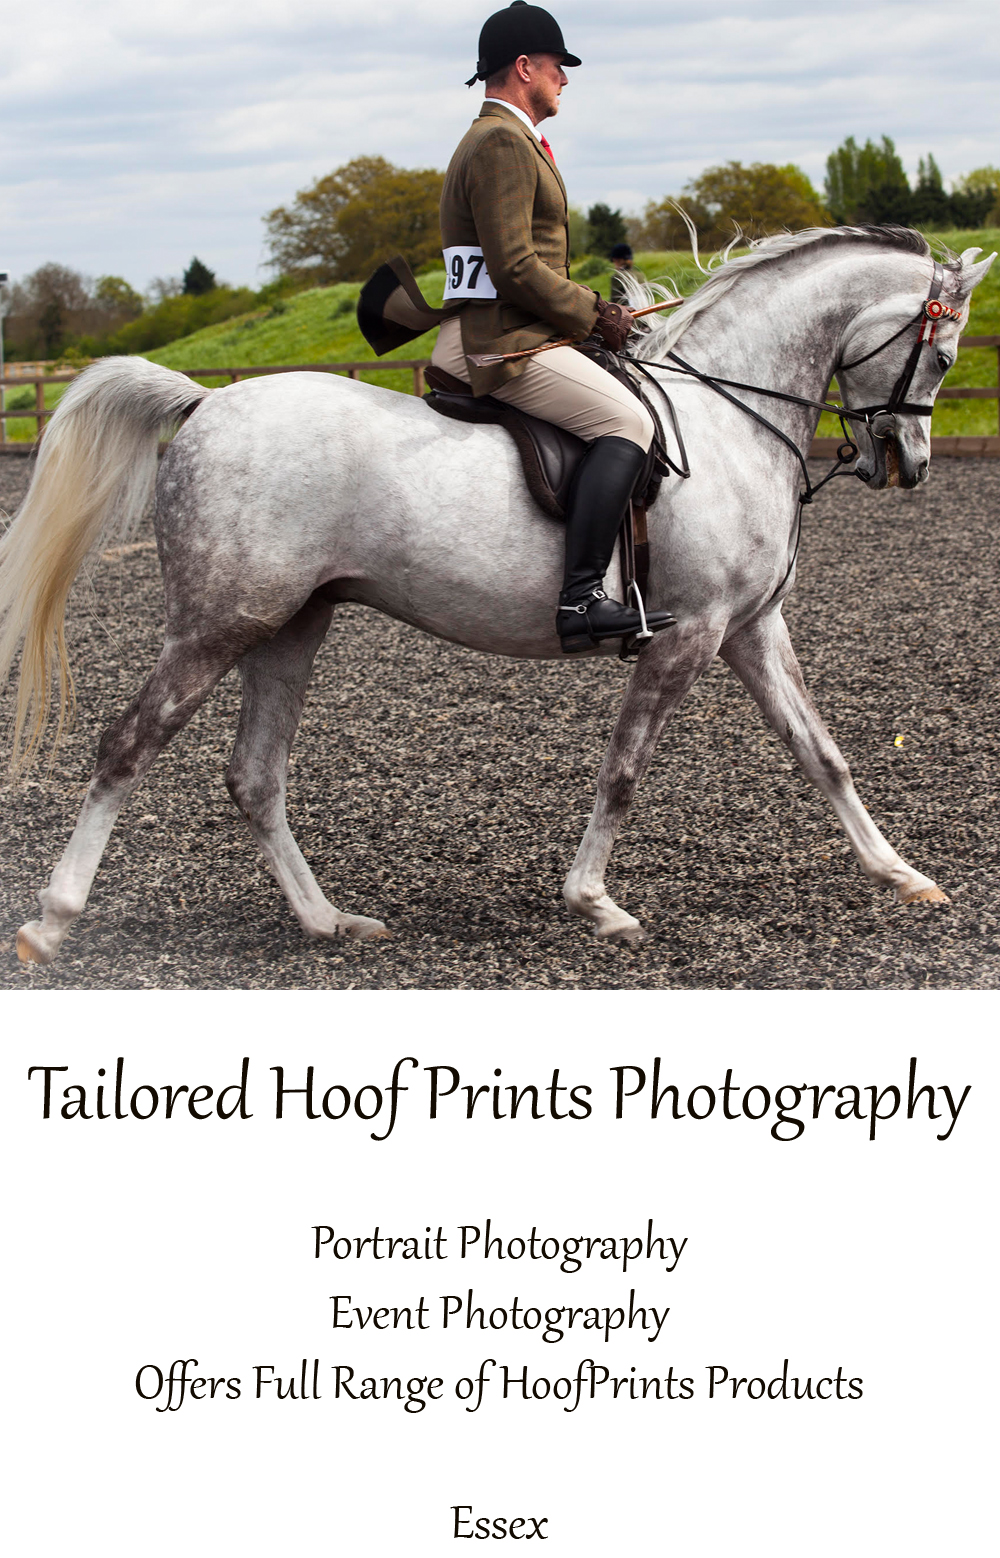 Tailored Hoof Prints Photography